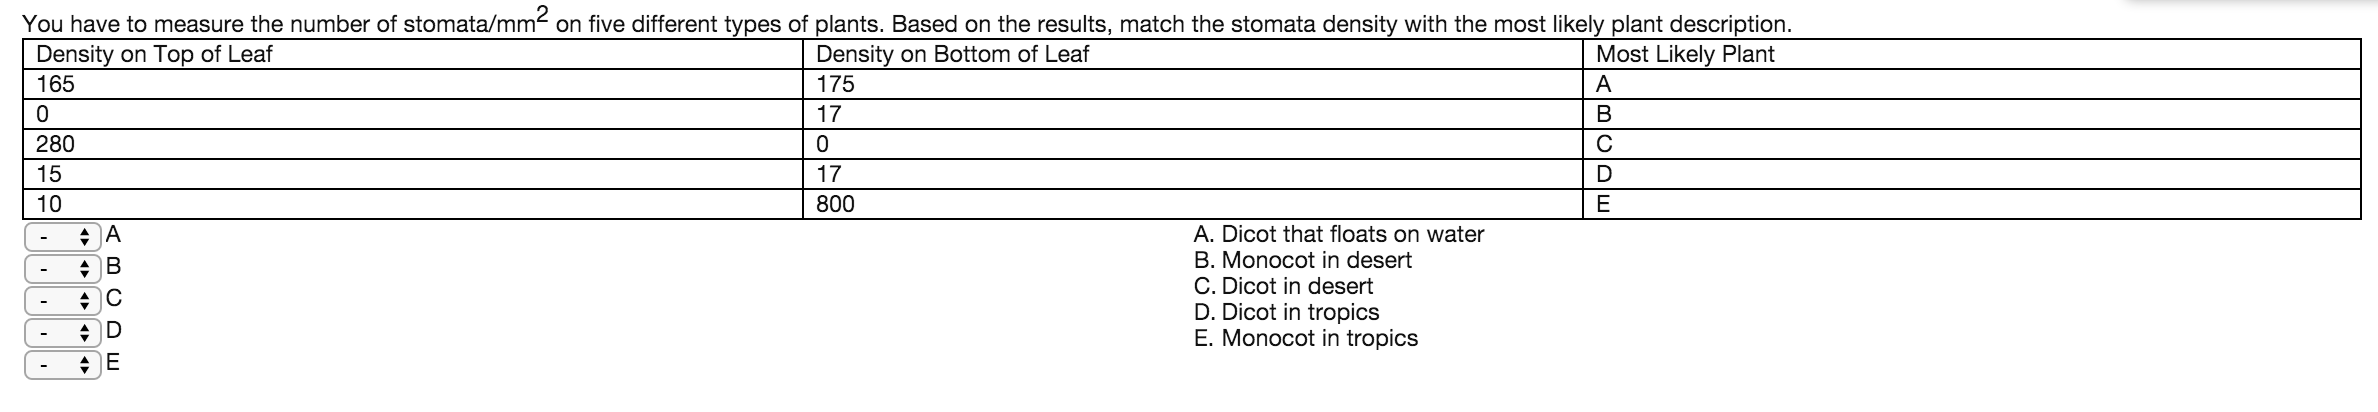 stomata density lab internal assessment Stomatal density in leaves of various xerophytes-a preliminary study david w strobel and marshall d sundberg abstract - recent general botany and plant anatomy textbooks state that stomatal density of xerophytic leaves is.